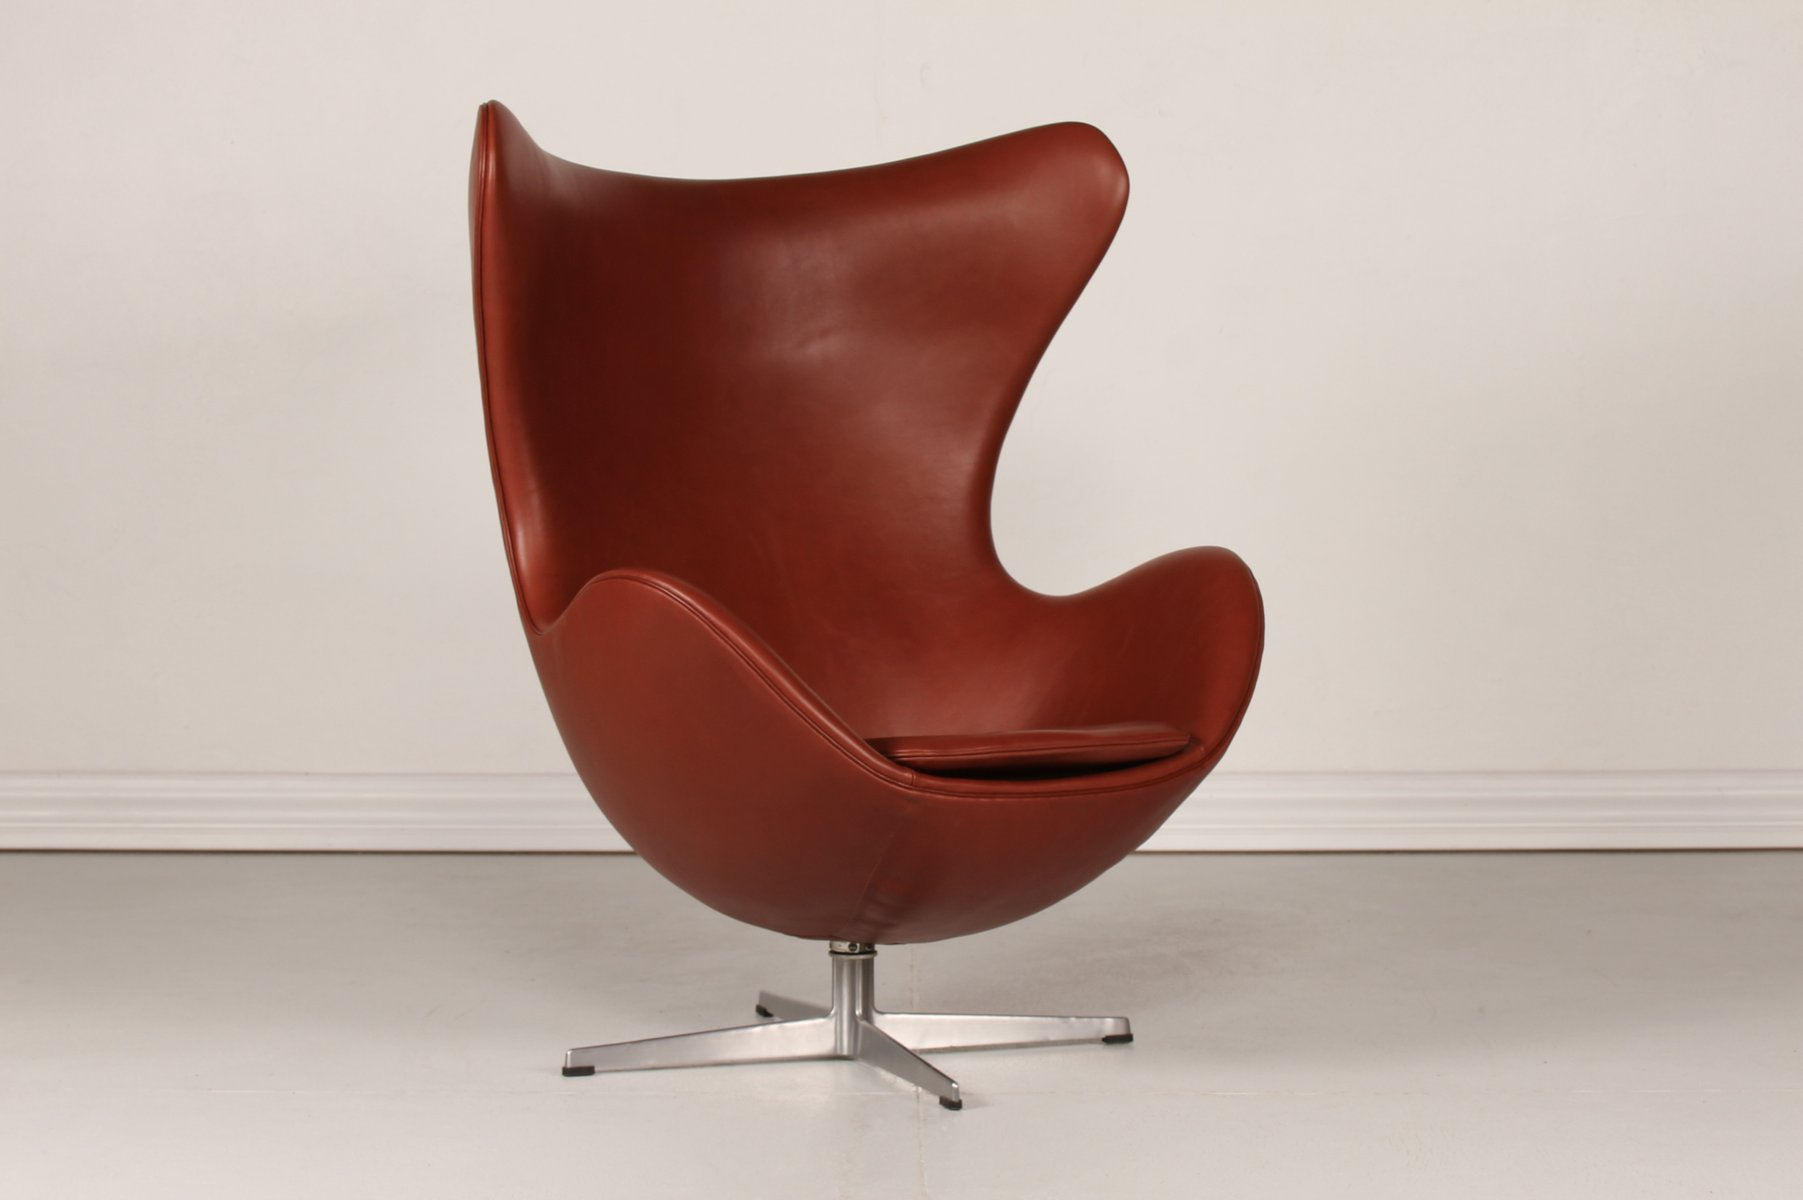 3316 Cognac Leather Egg Chair by Arne Jacobsen for Fritz Hansen ...